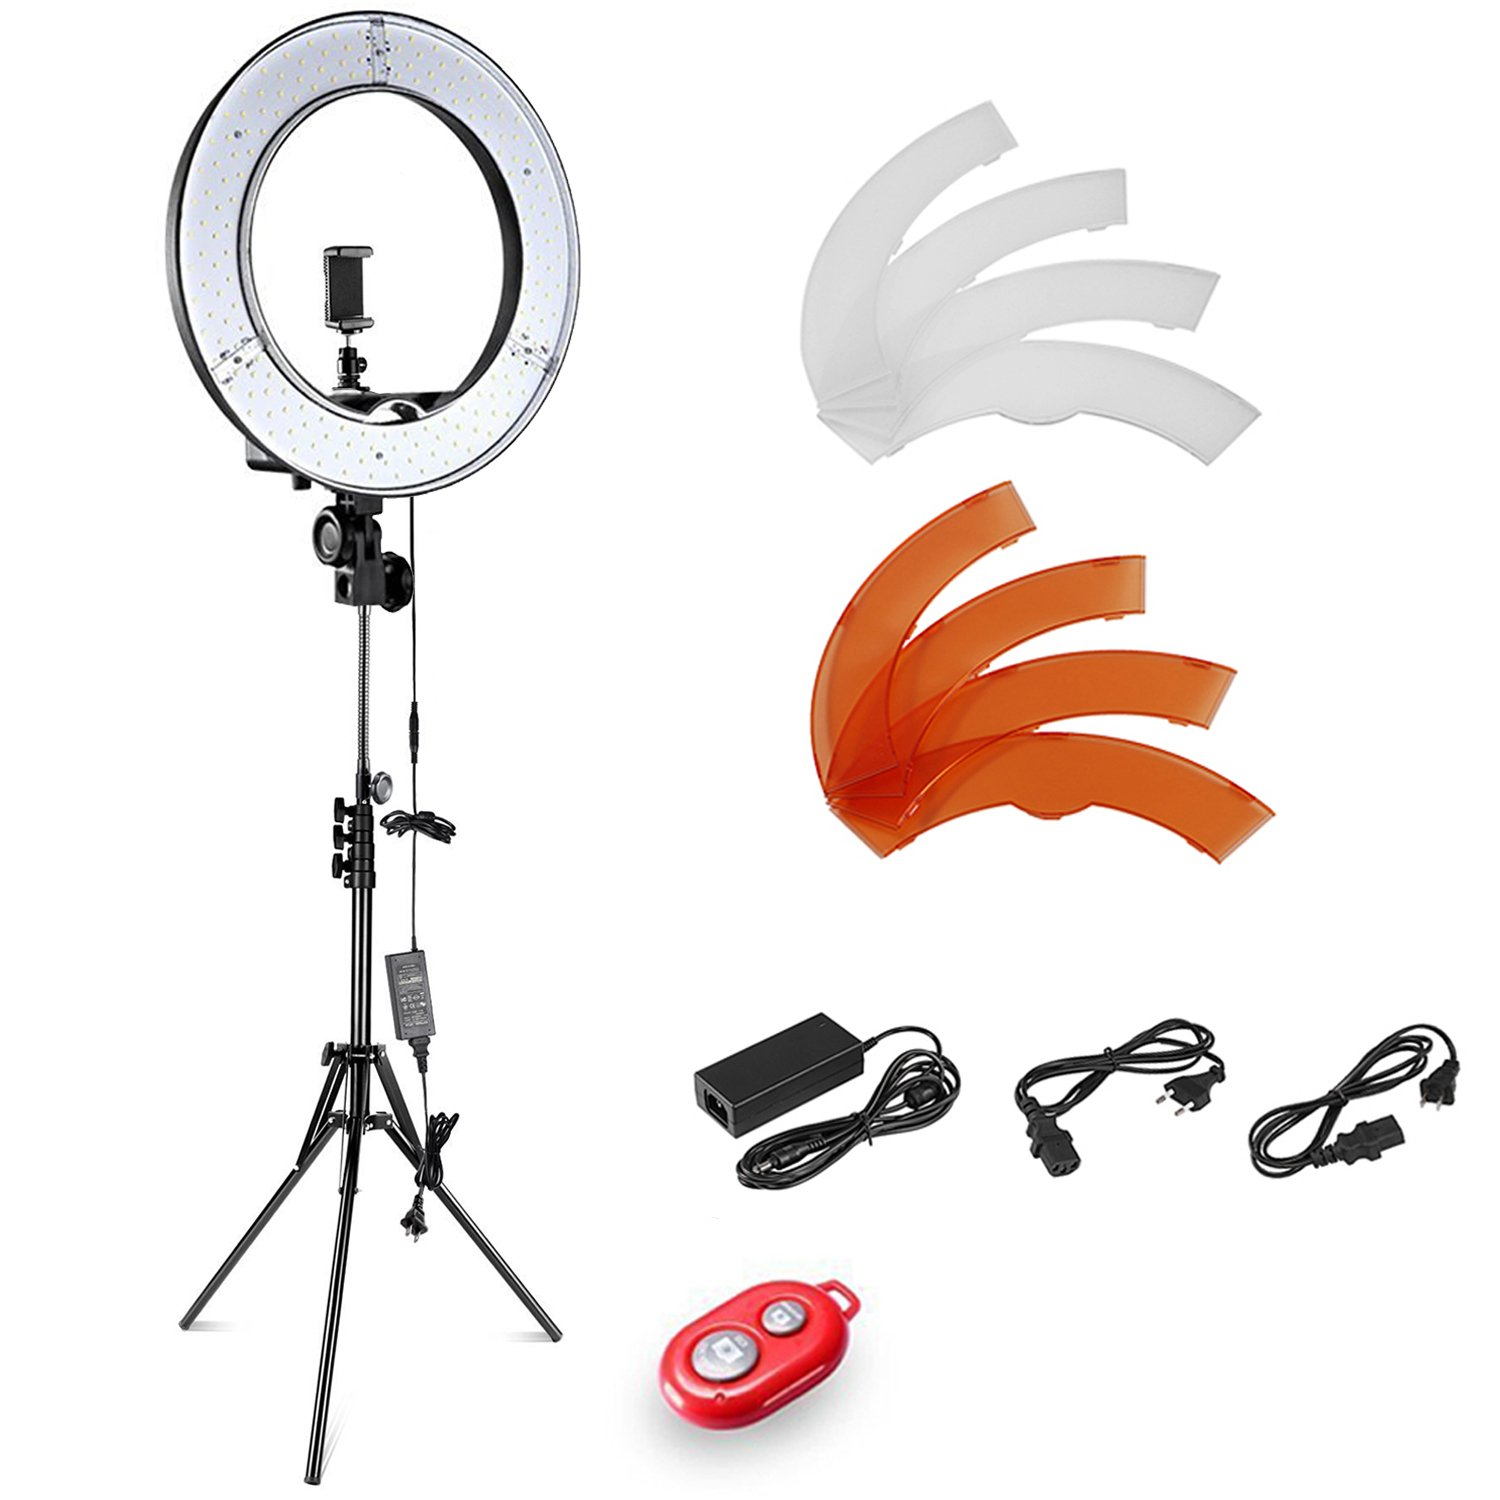 Ring Light Stand Ebay: Neewer 12-inch Inner/14-inch Outer LED Ring Light Stand